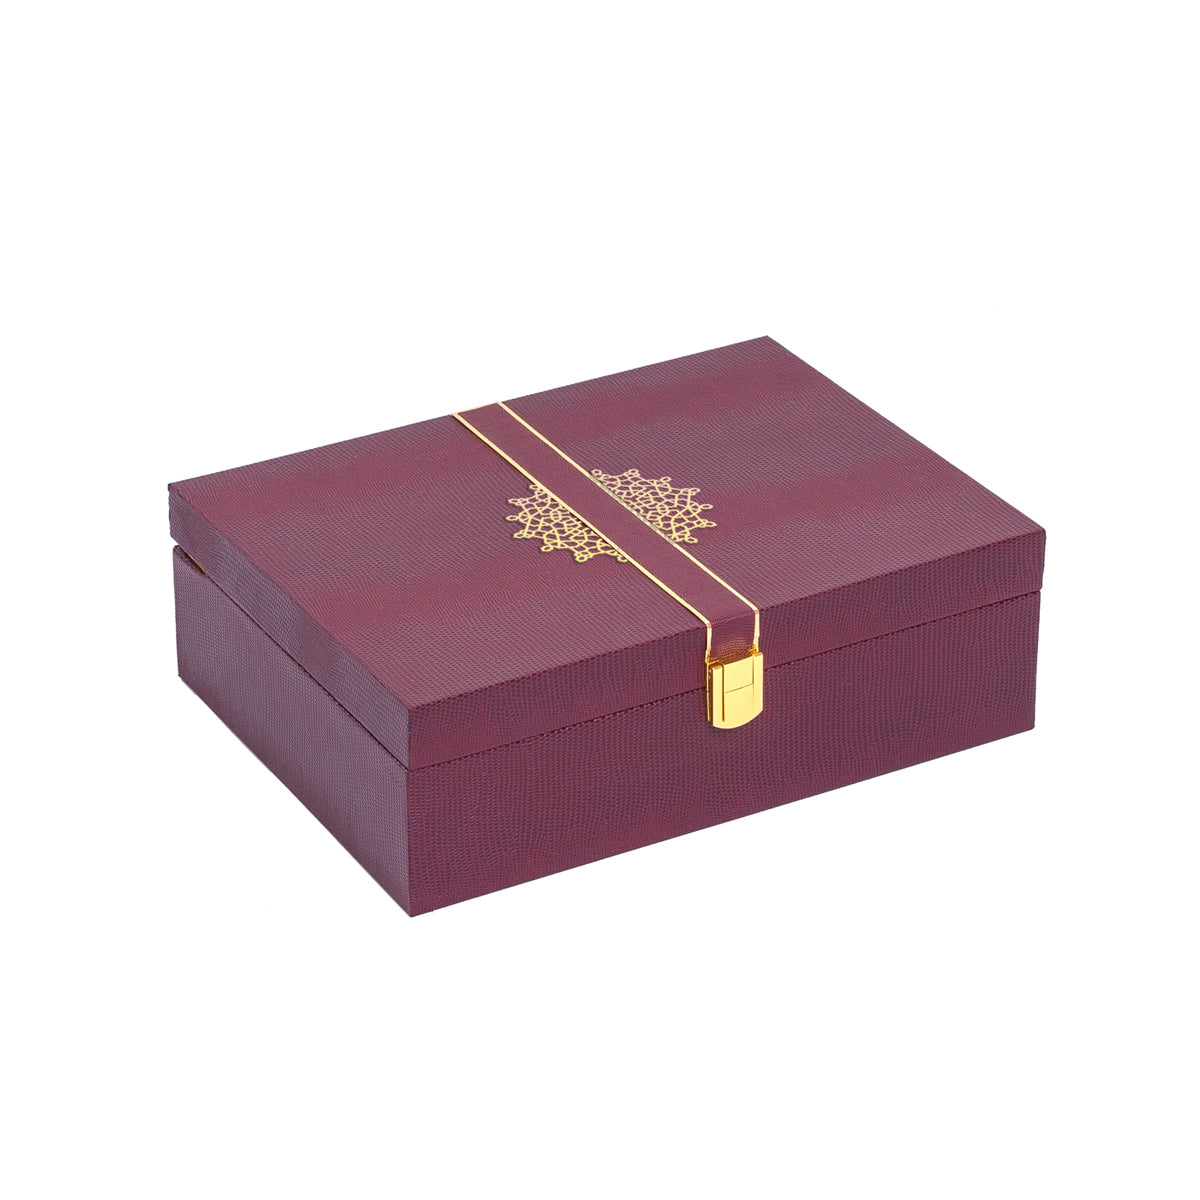 Royale Rakhi Gift Box - Burgundy - Supreme